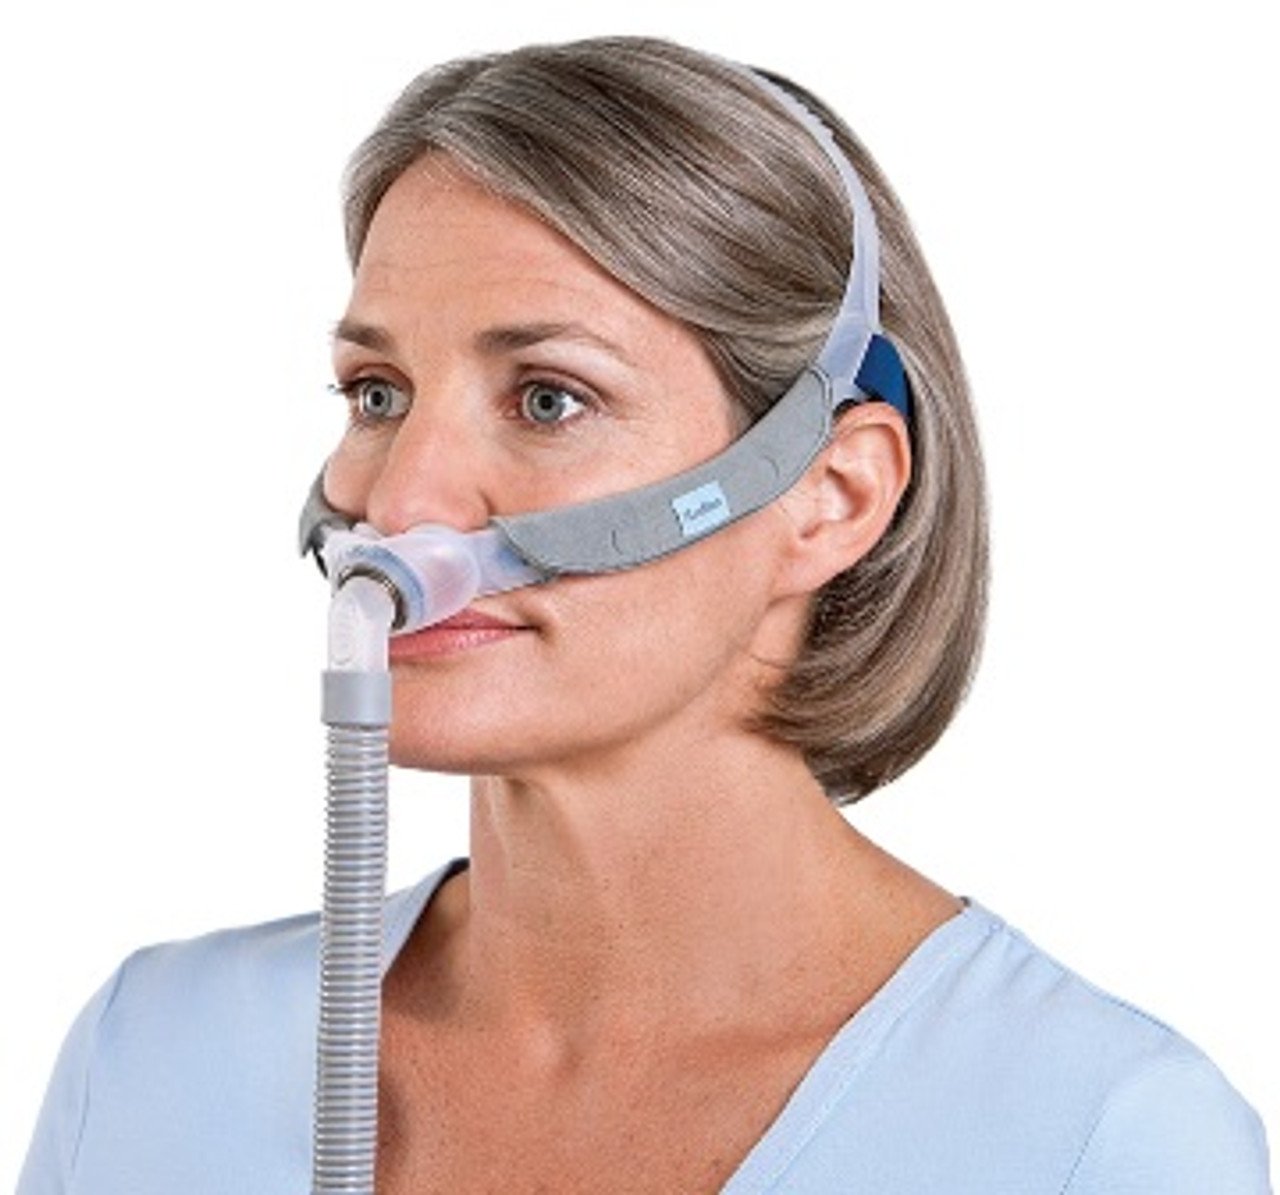 cpap mask resmed nasal pillow mask swift fx for her